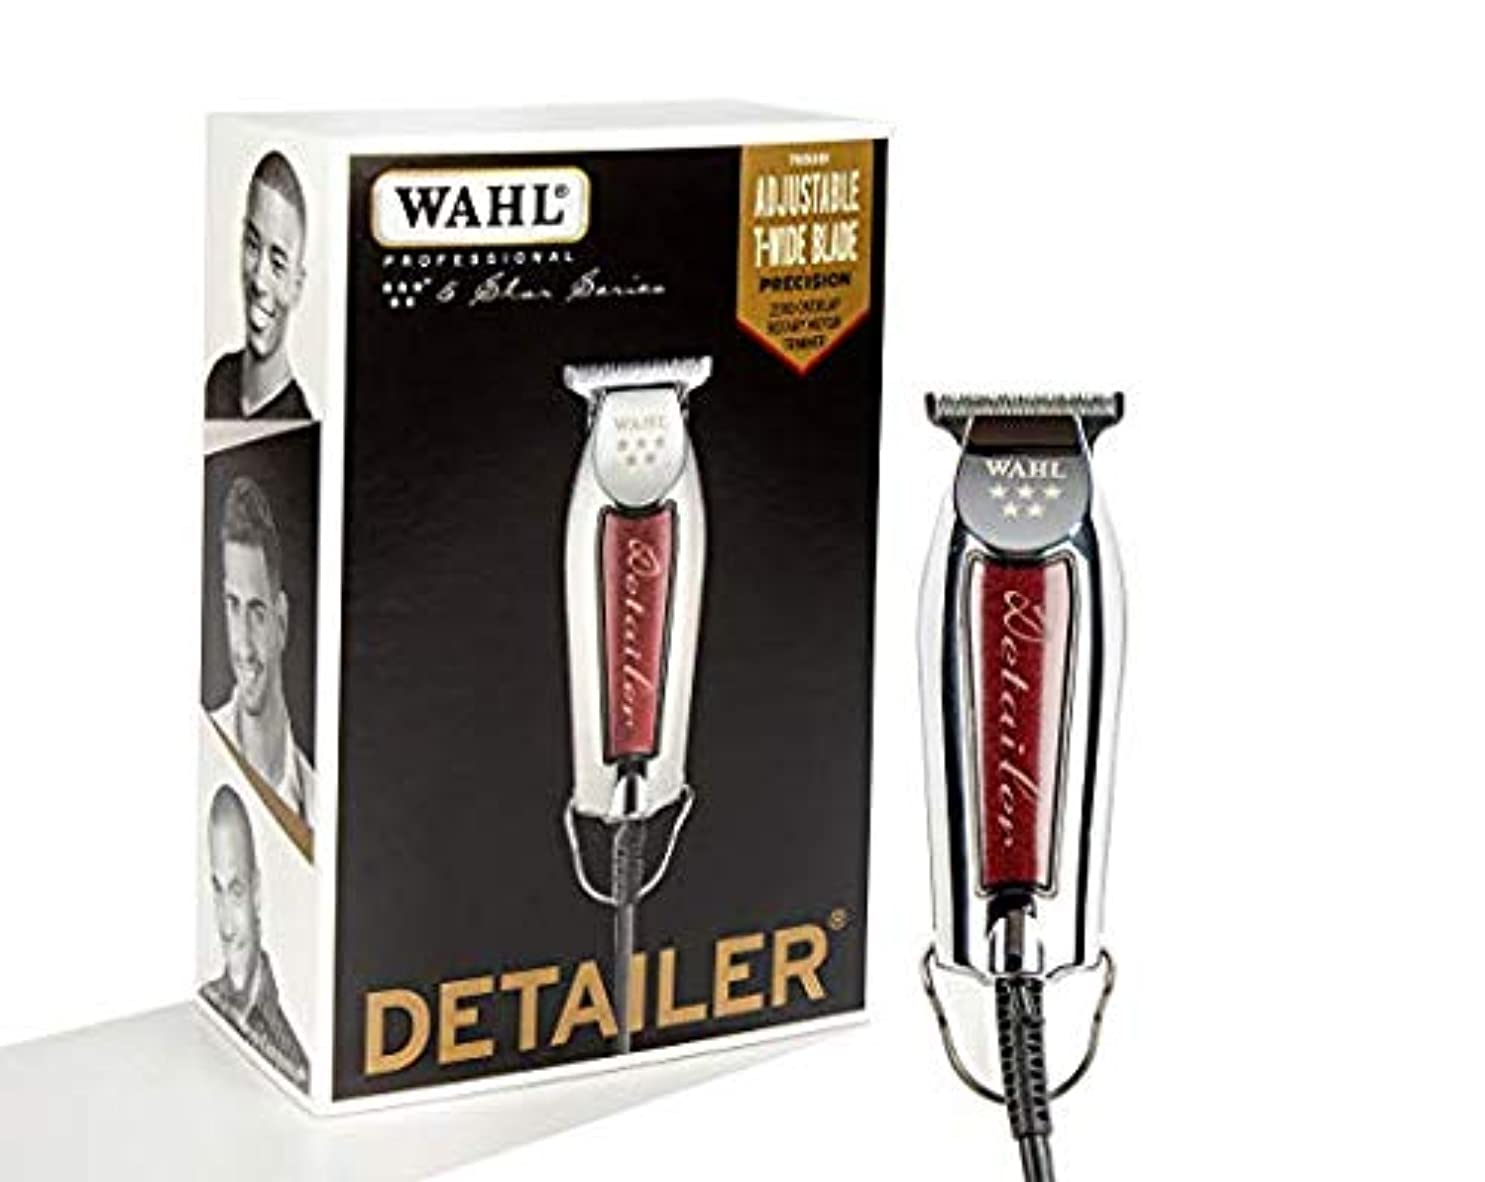 シェーバー人生を作るブランデー[Wahl ] [Professional Series Detailer #8081 - With Adjustable T-Blade, 3 Trimming Guides (1/16 inch - 1/4 inch), Red Blade Guard, Oil, Cleaning Brush and Operating Instructions, 5-Inch ] (並行輸入品)